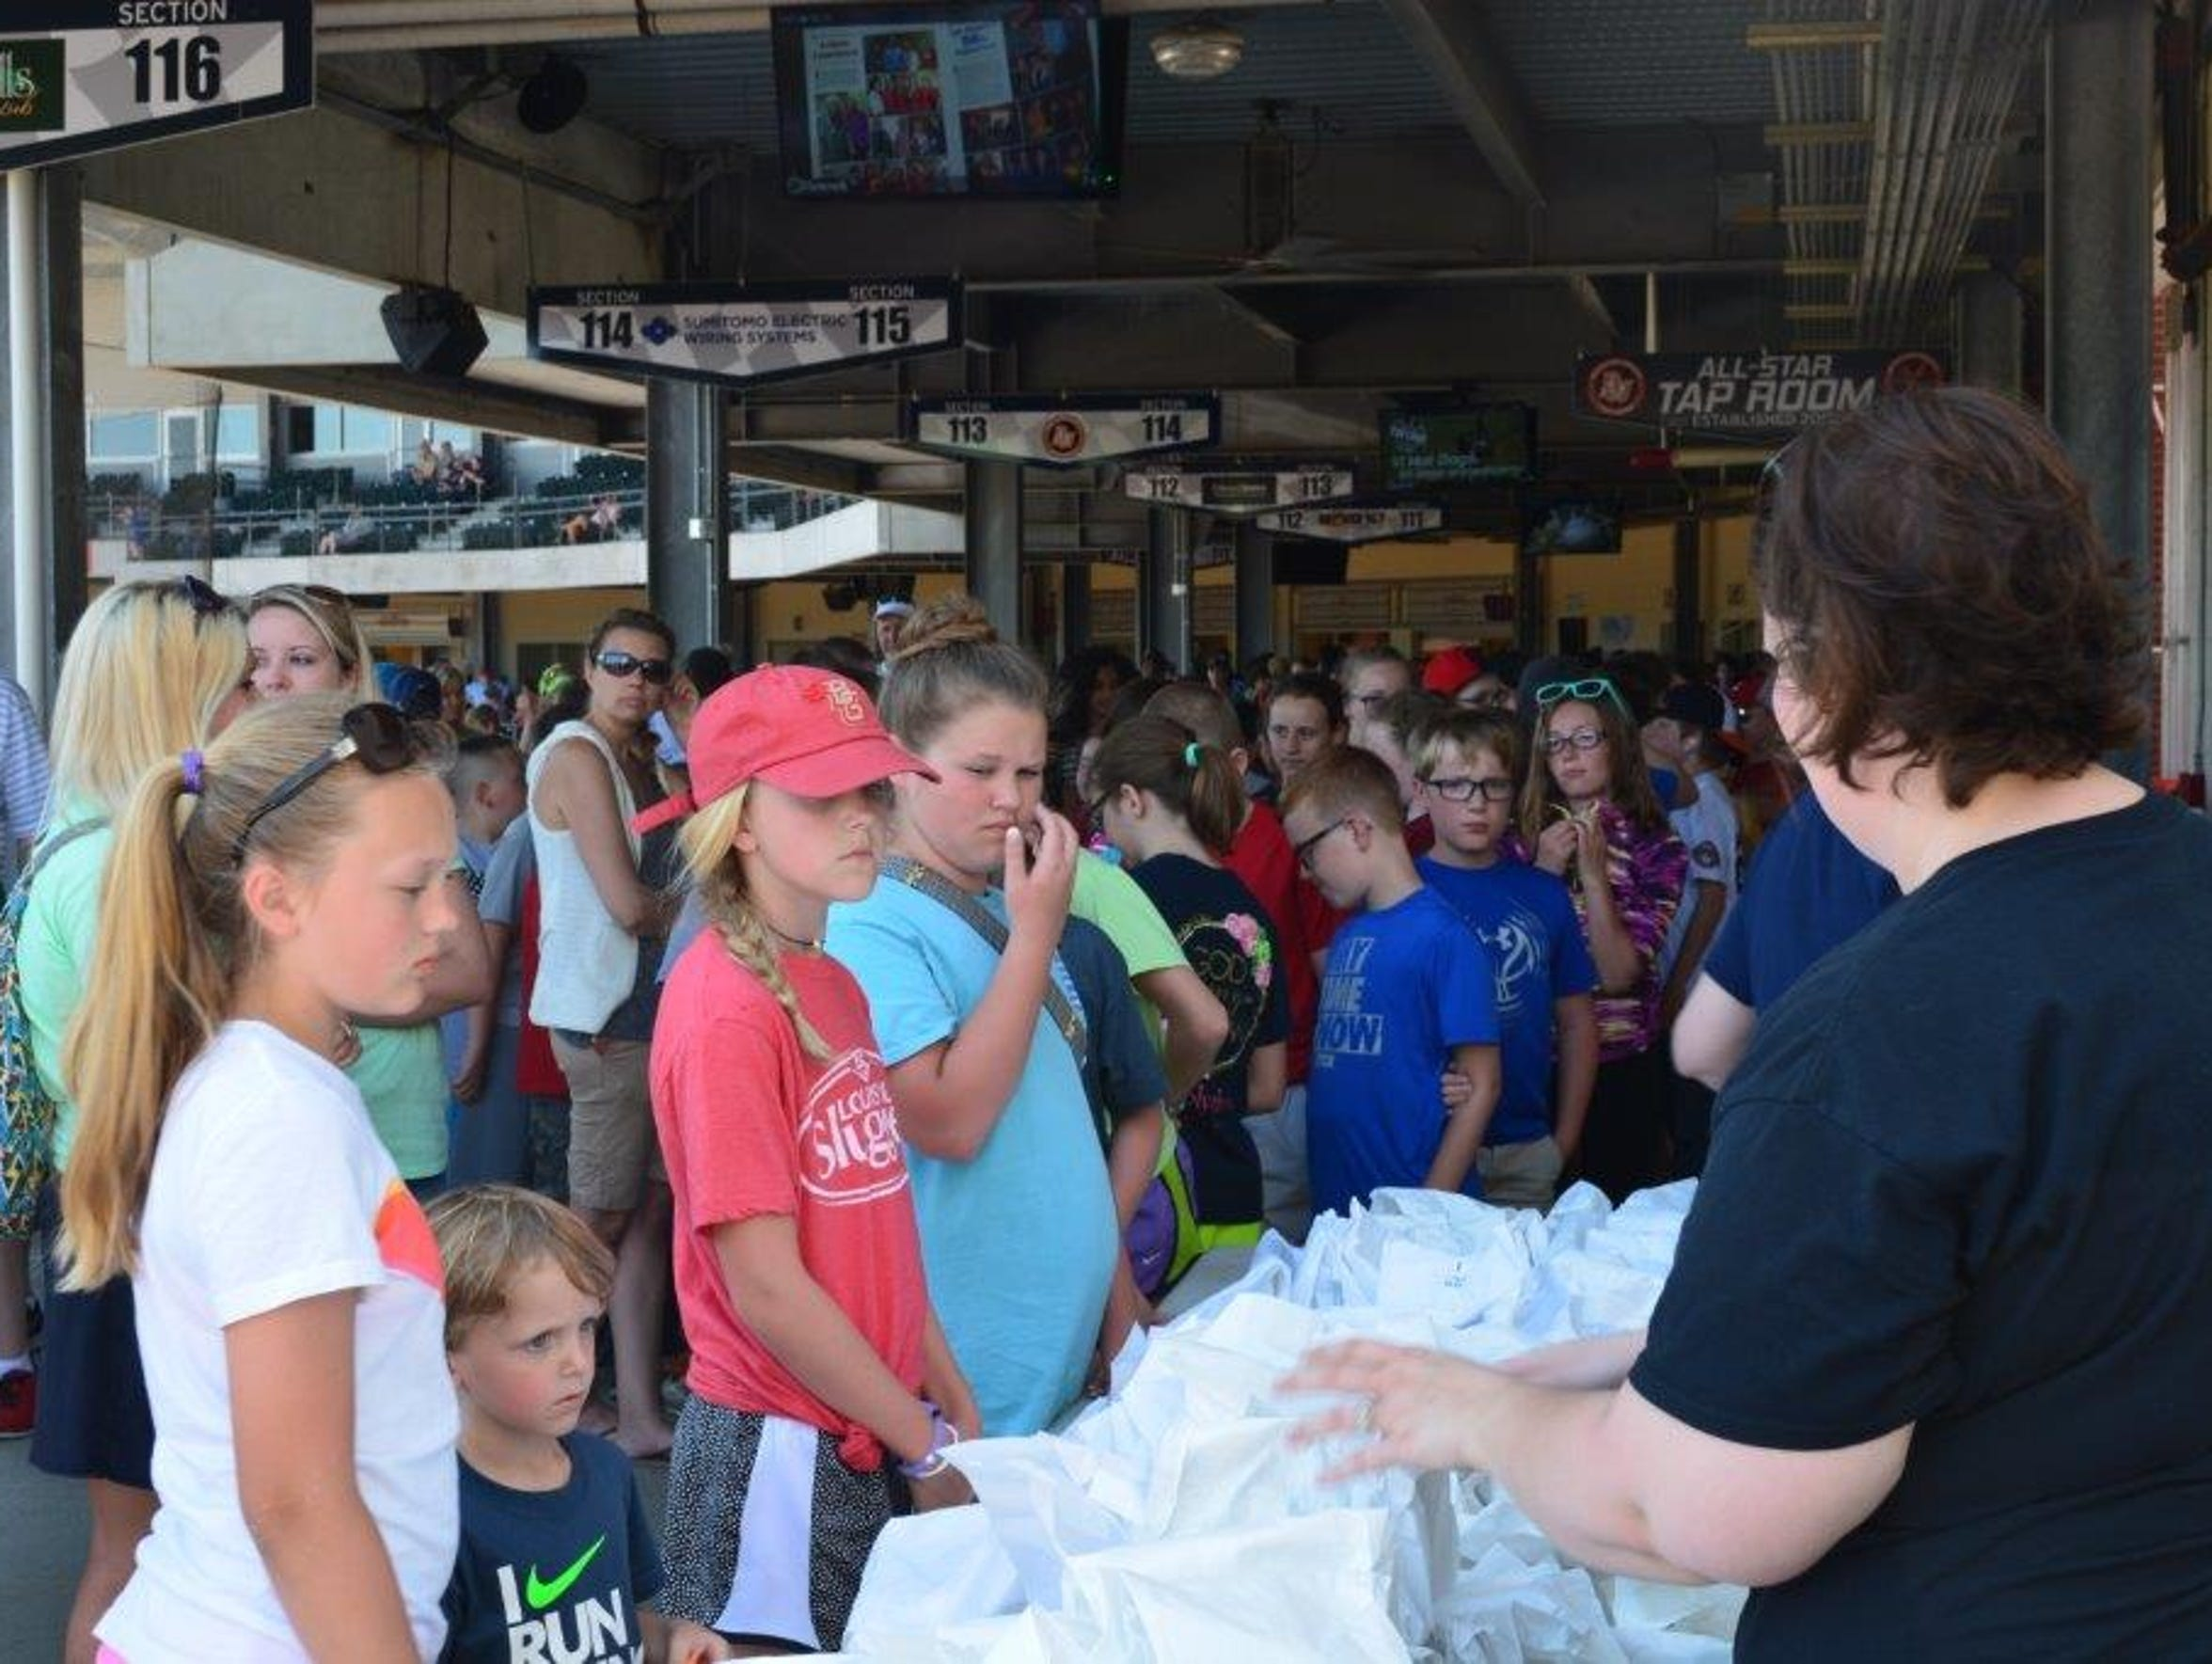 Young fans line up to get popcorn at an April 26 Bowling